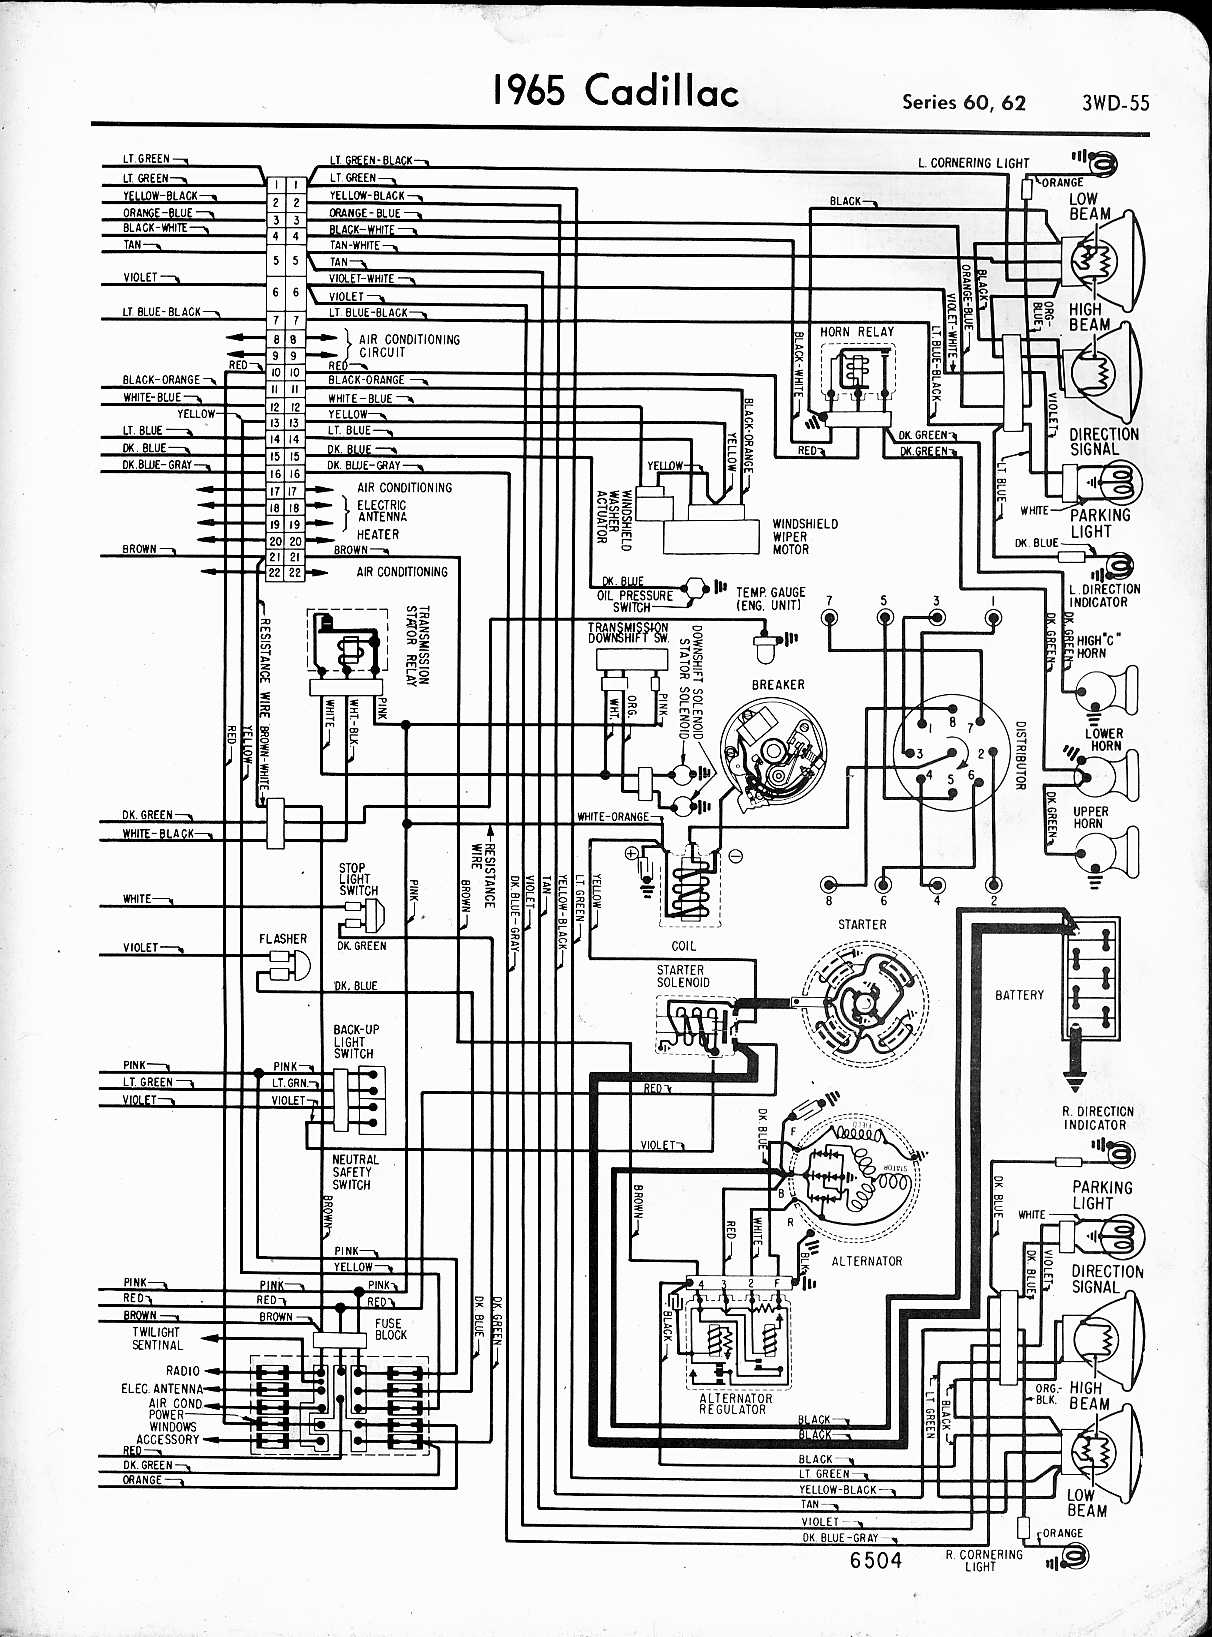 Cadillac Esc Wiring Diagram Data 2005 Suzuki Forenza Fuse Box 2000 Escalade Headlamp Switch Wire For Rc Aircraft